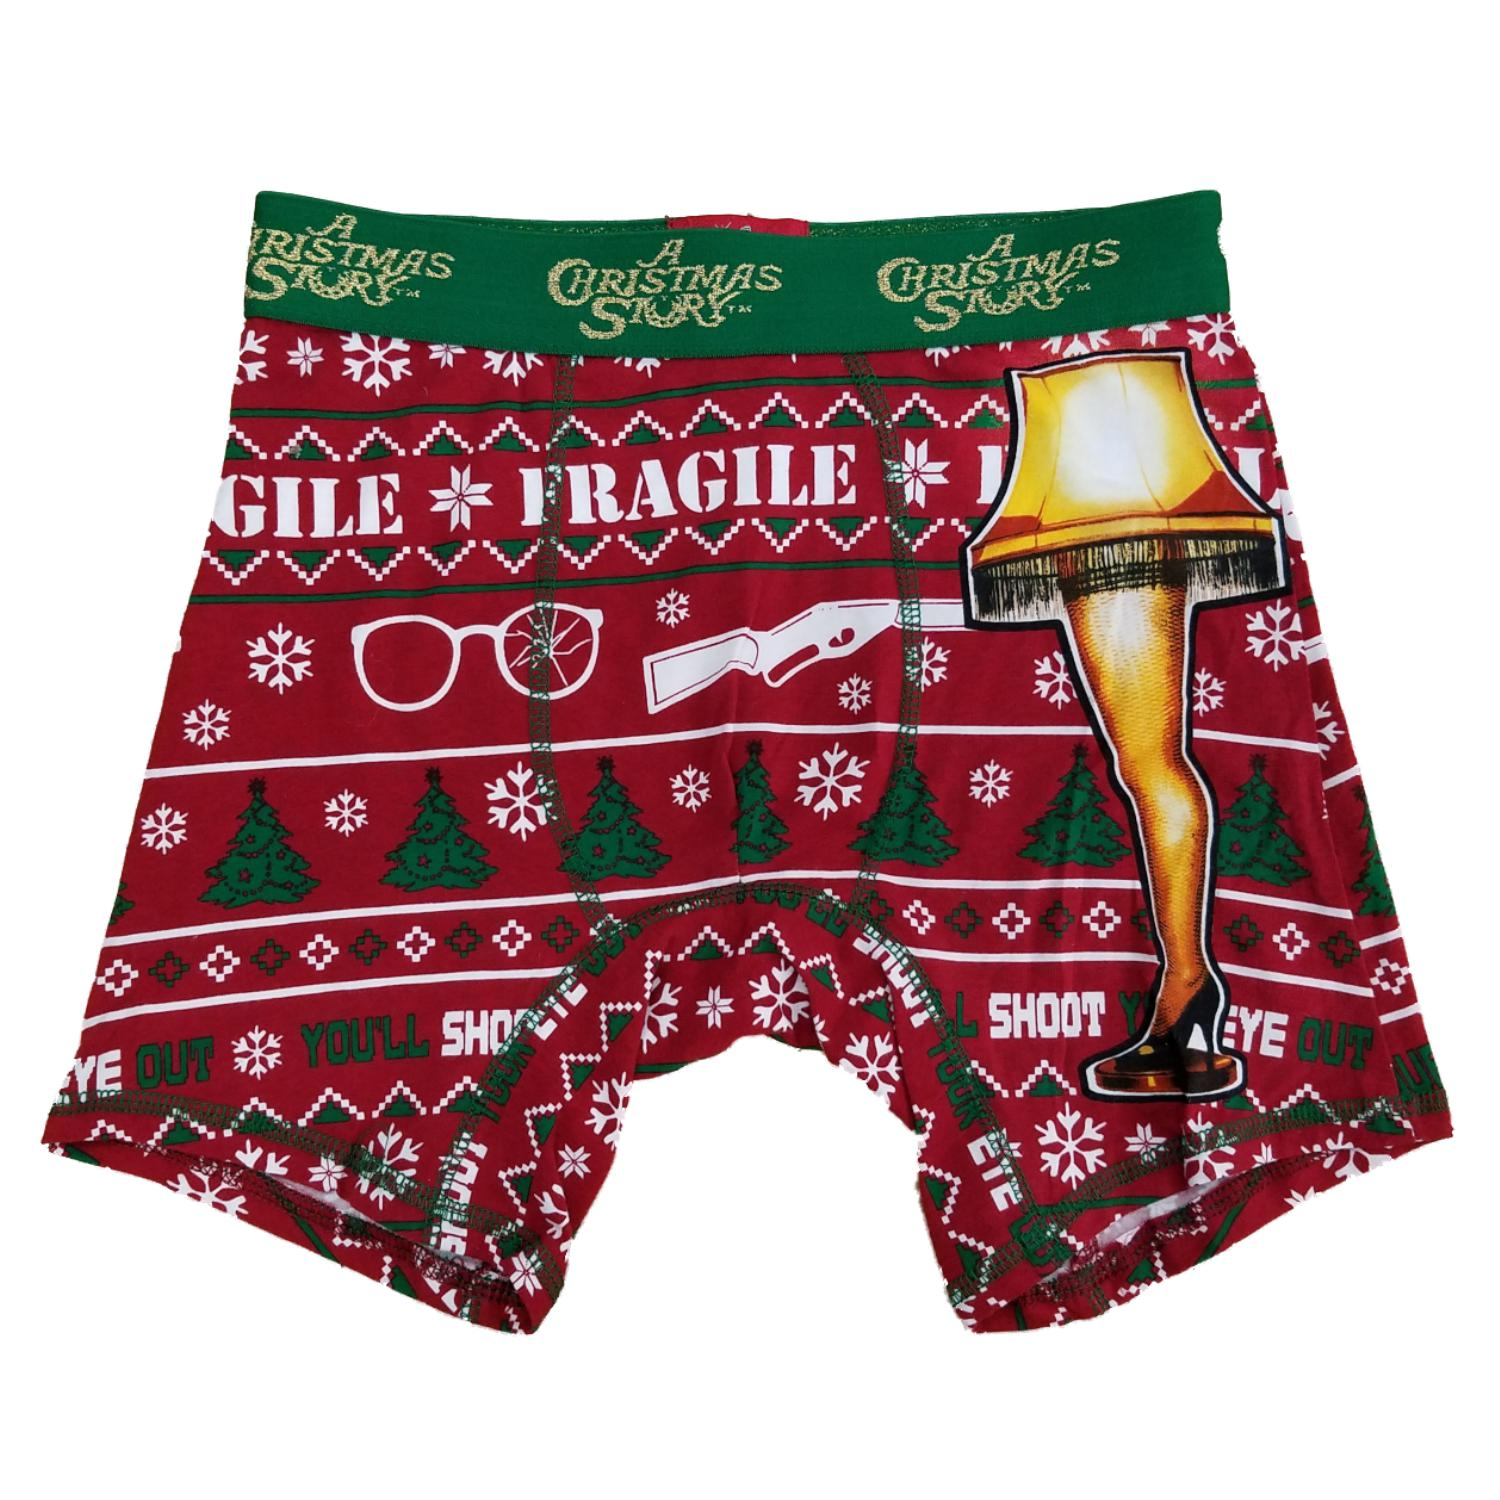 A Christmas Story Mens Fragile Leg Lamp Red Ryder Christmas Holiday Boxer Briefs